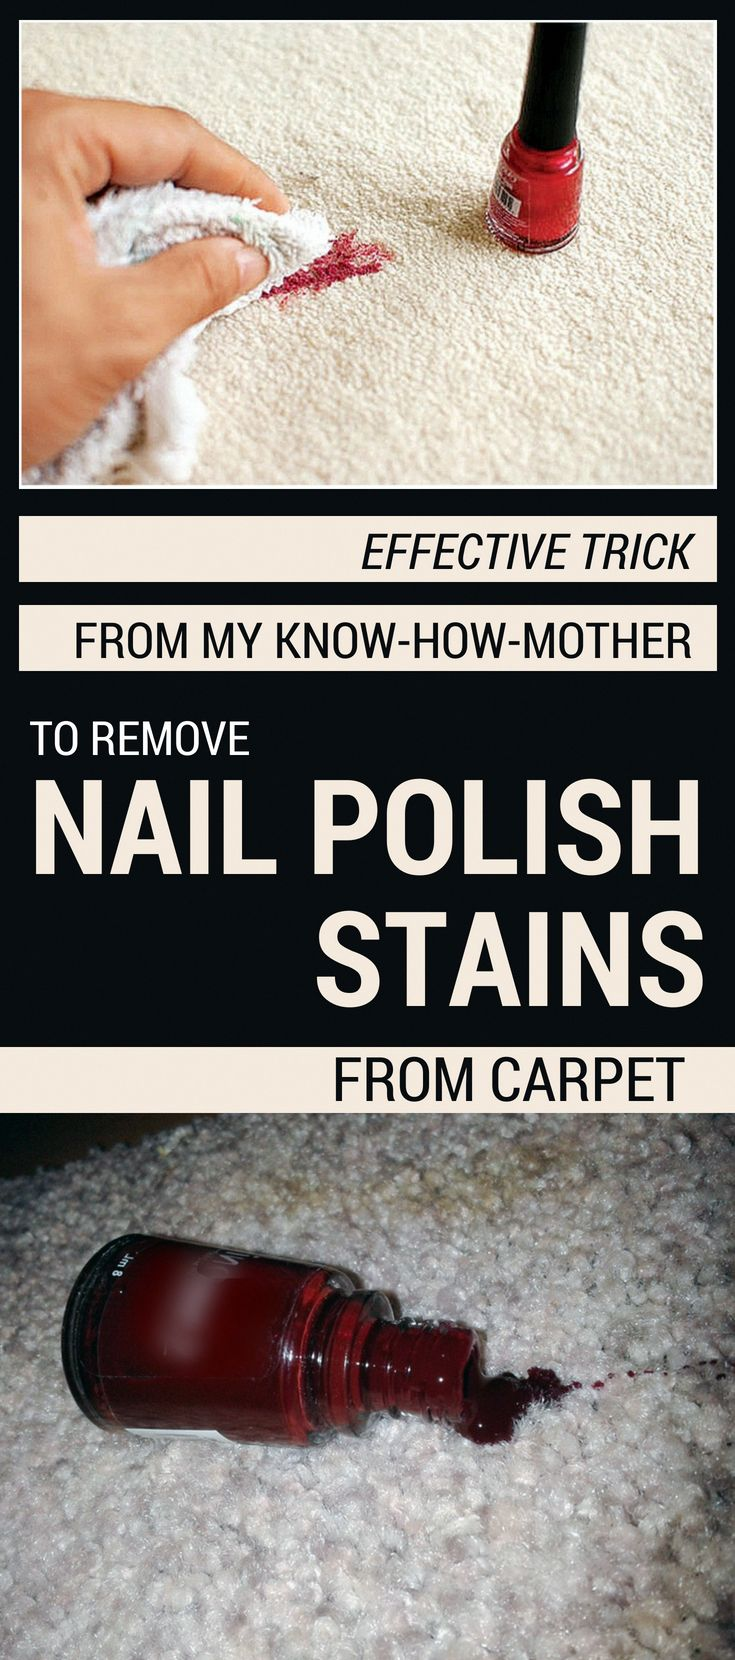 Effective trick from my knowhowmother to remove nail